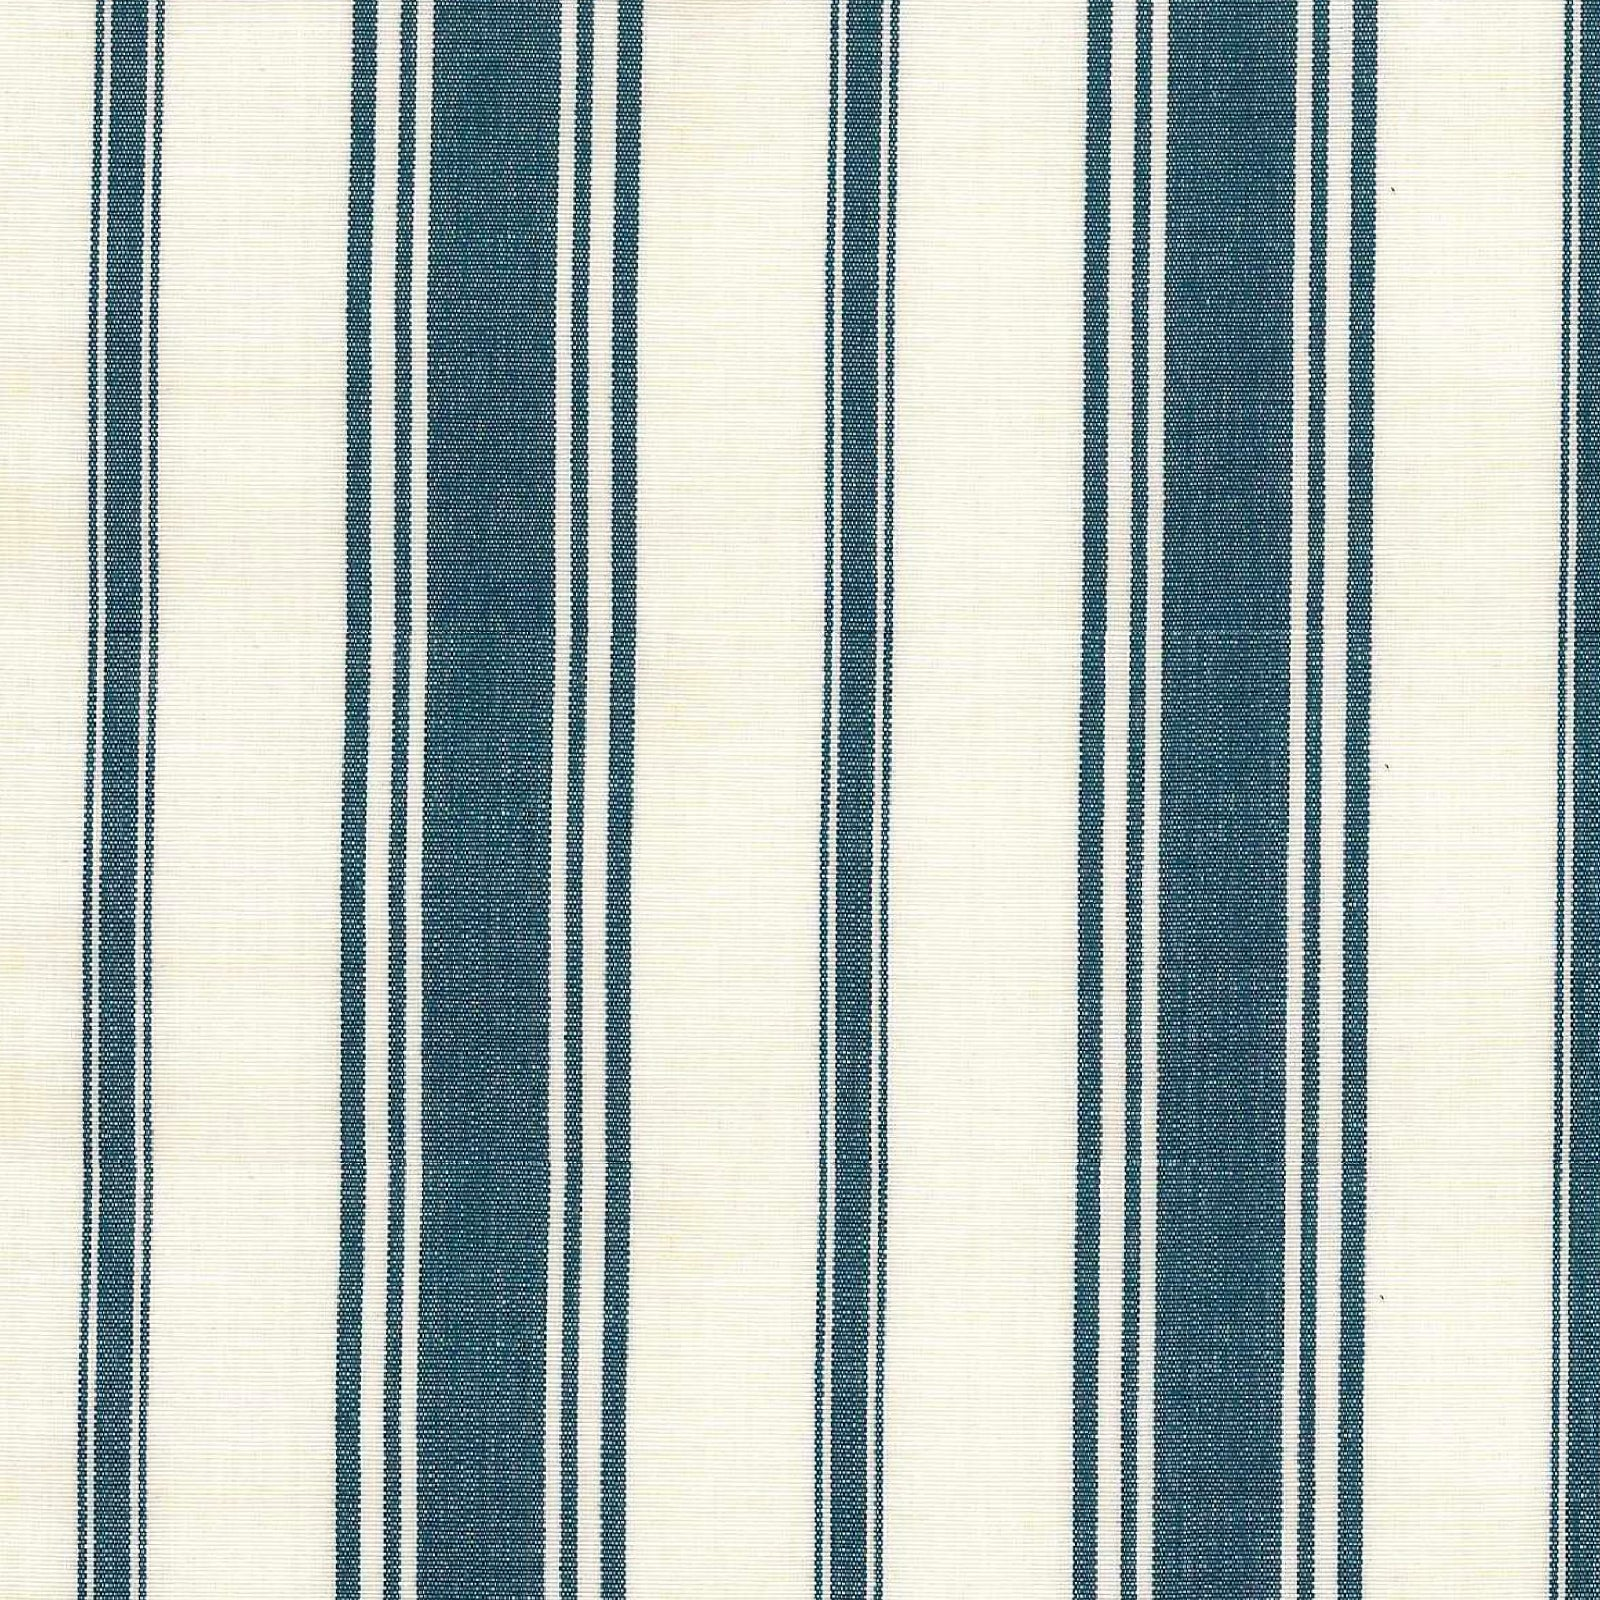 Wentworth Stripe Tablecloth in Navy